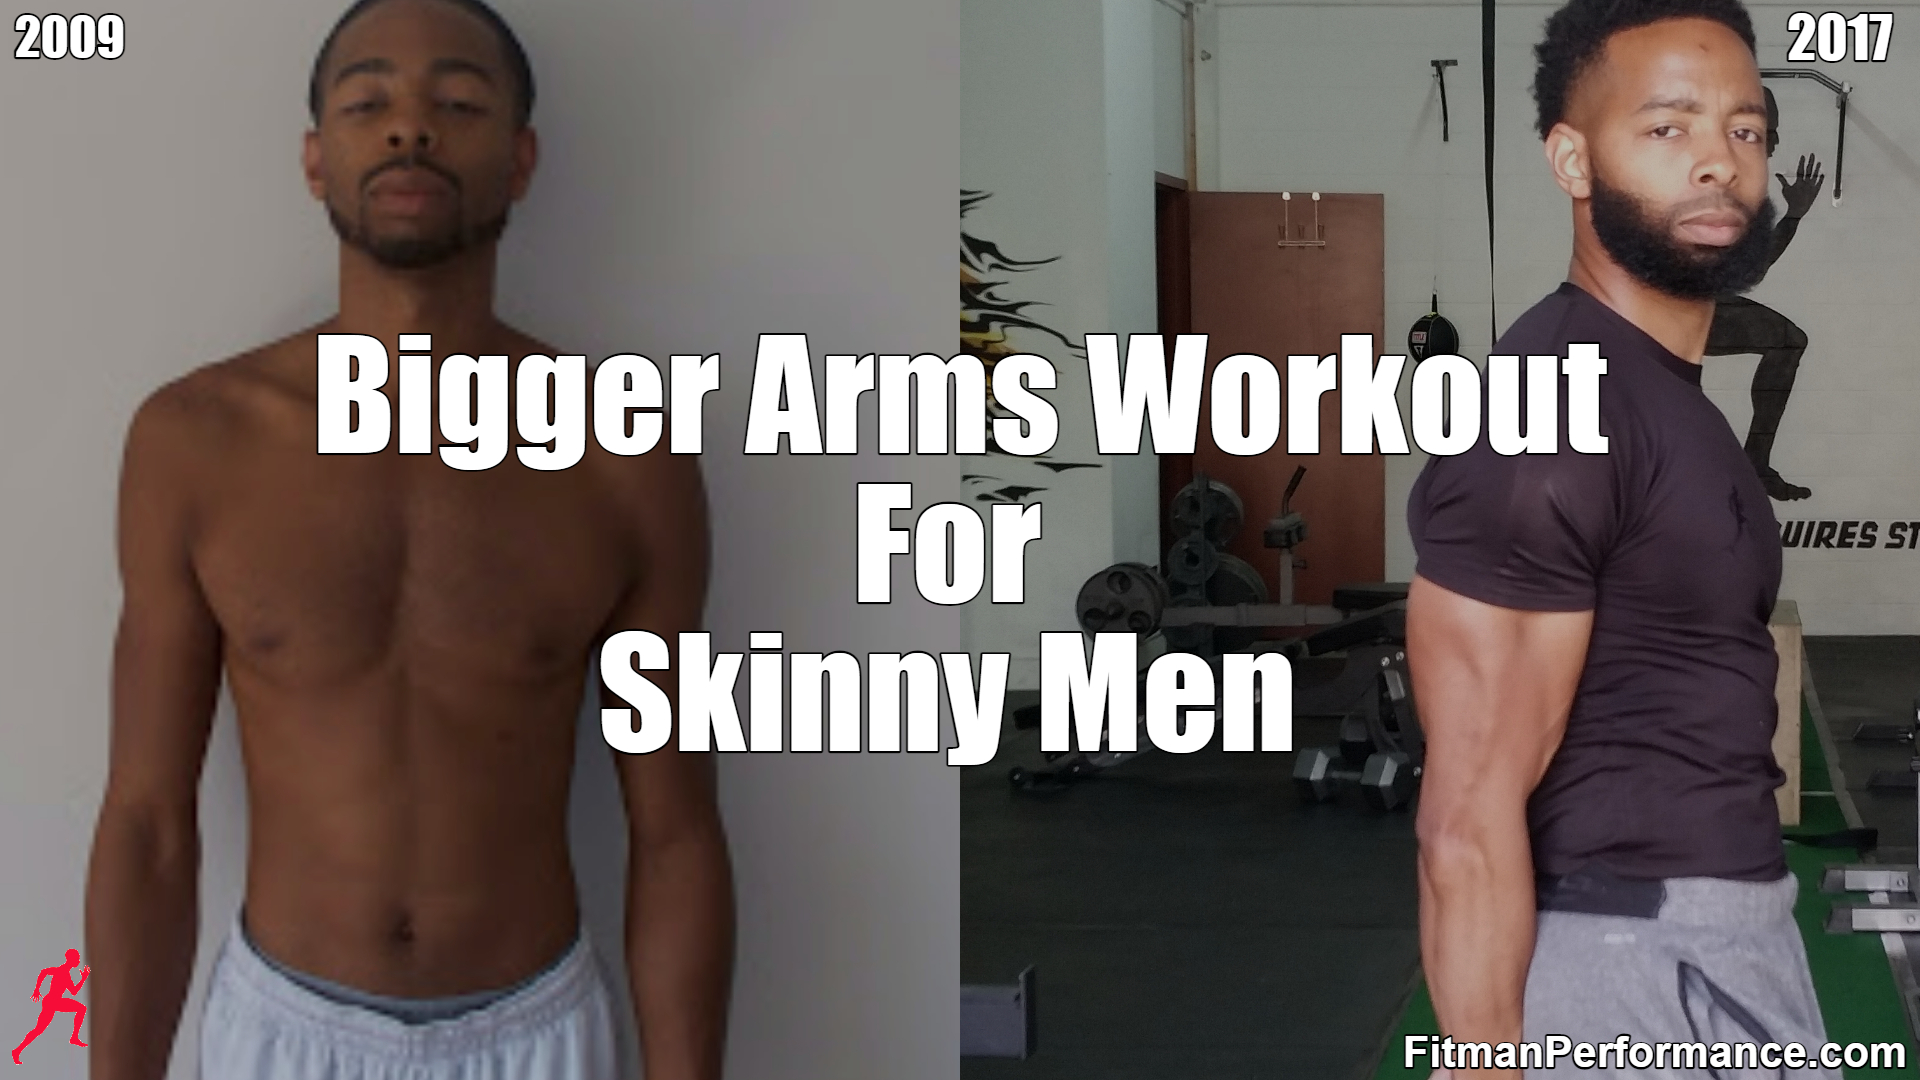 Bigger Arms Workout For Skinny Men And Women